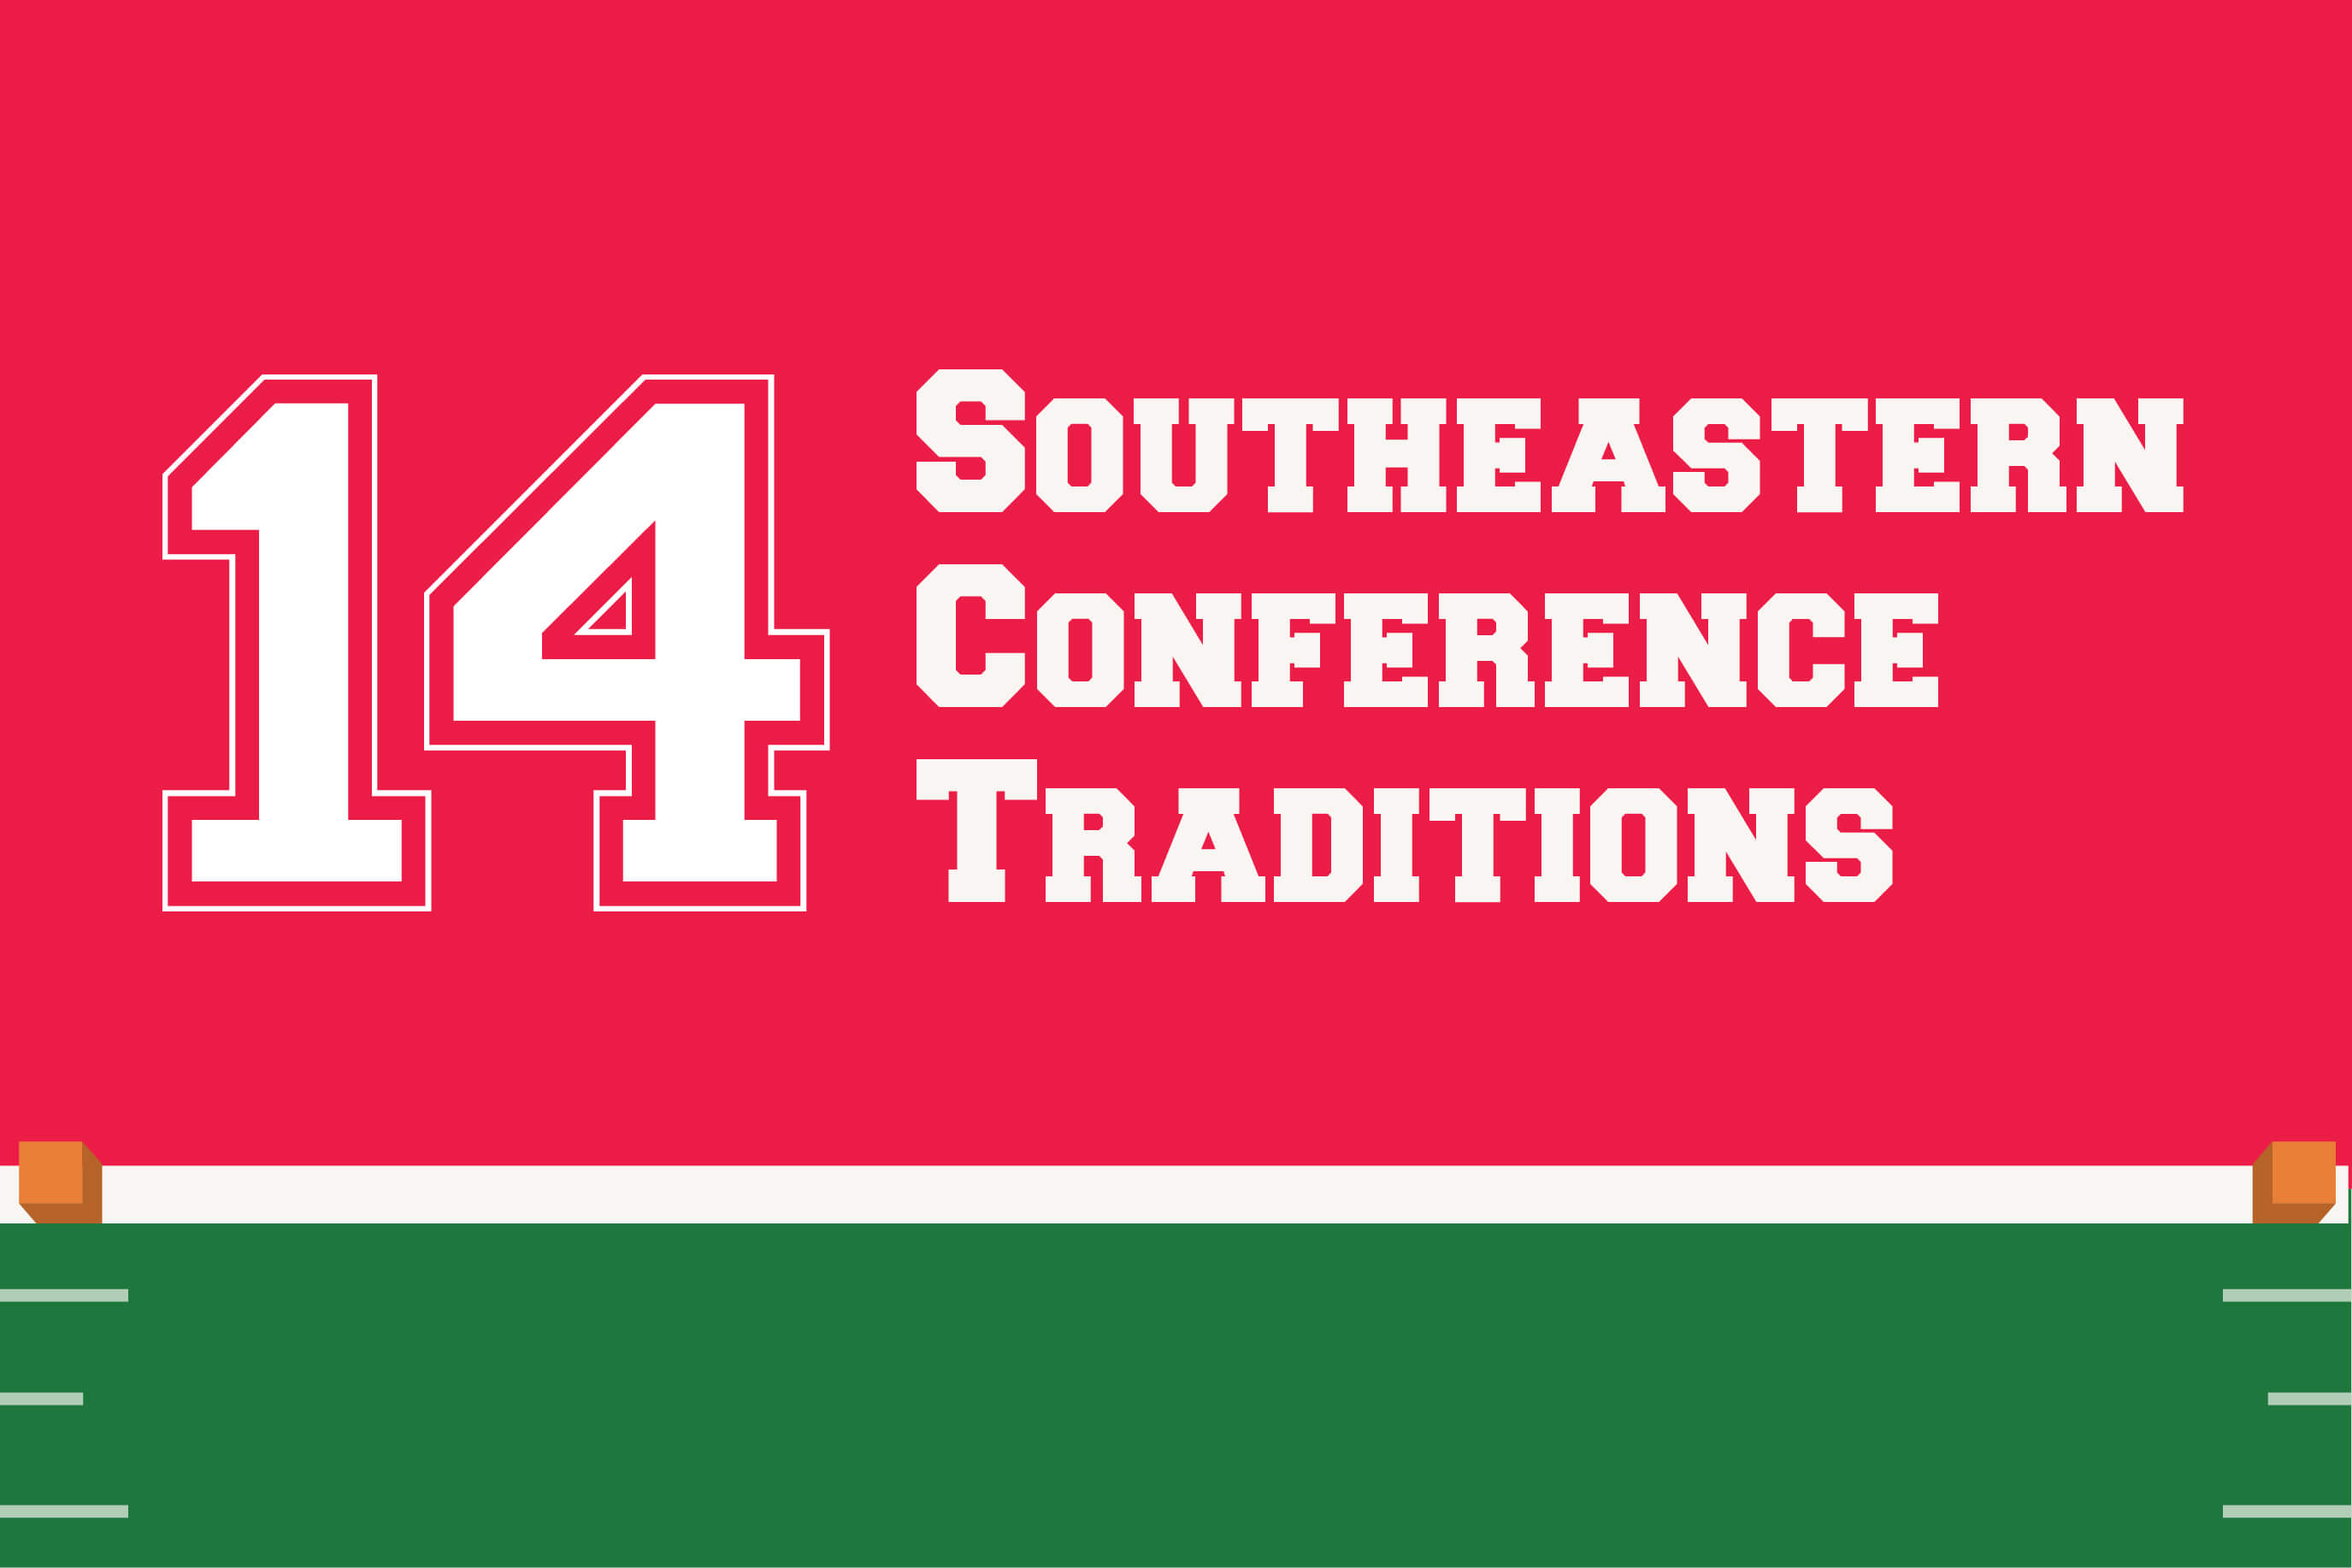 14 Southeastern Conference College Football Traditions infographic feature image